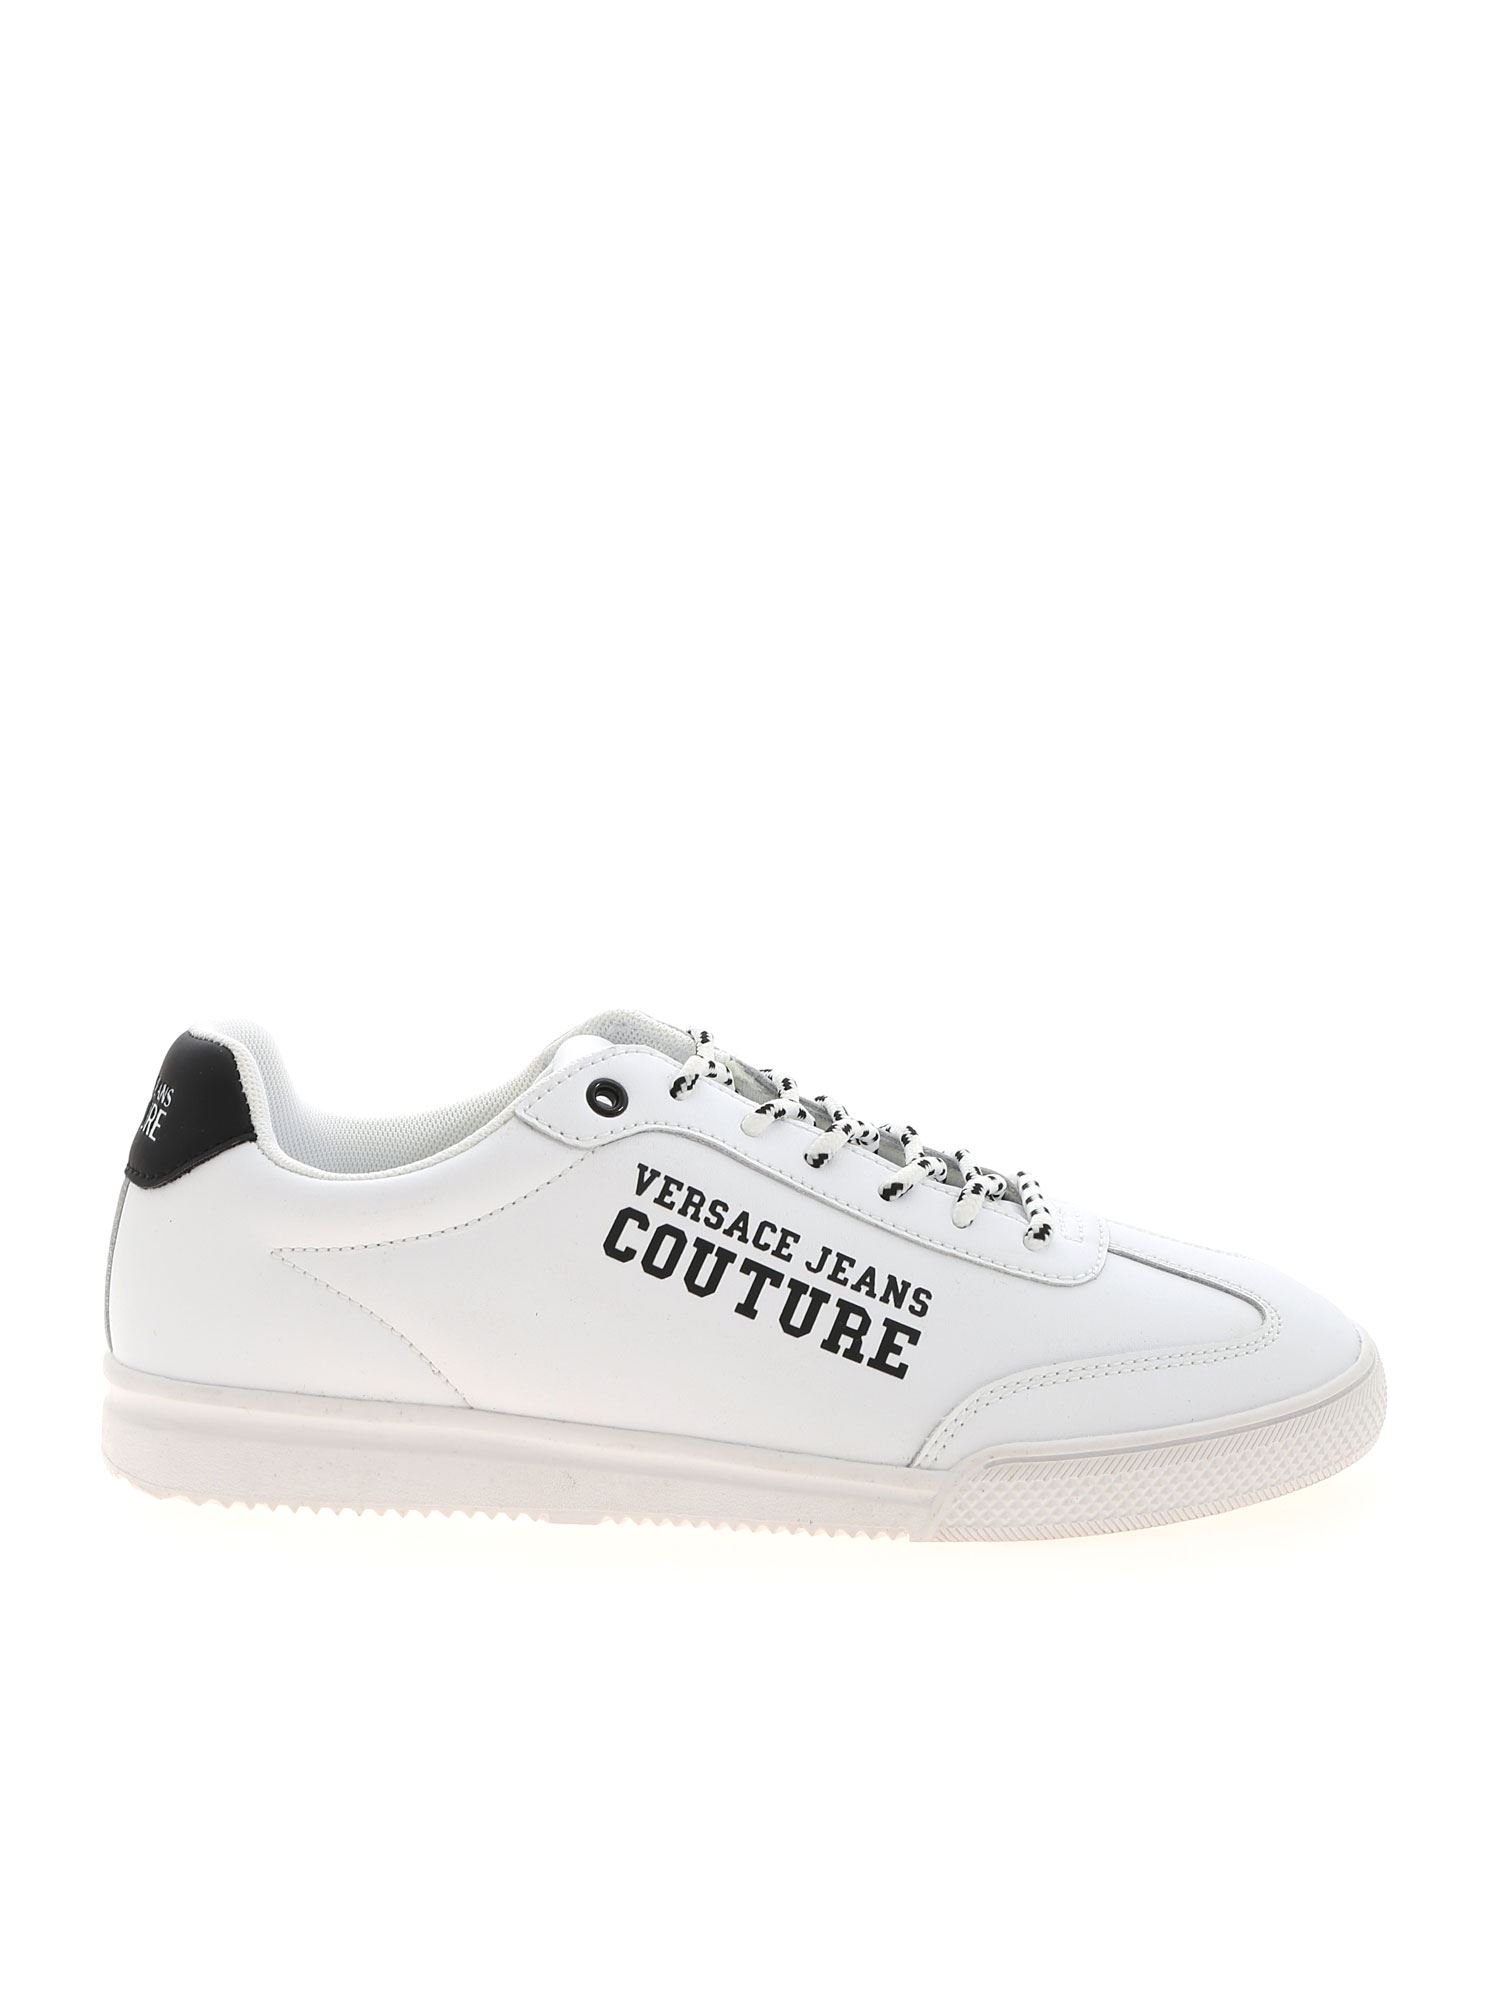 Versace Jeans Couture BLACK LOGO SNEAKERS IN WHITE